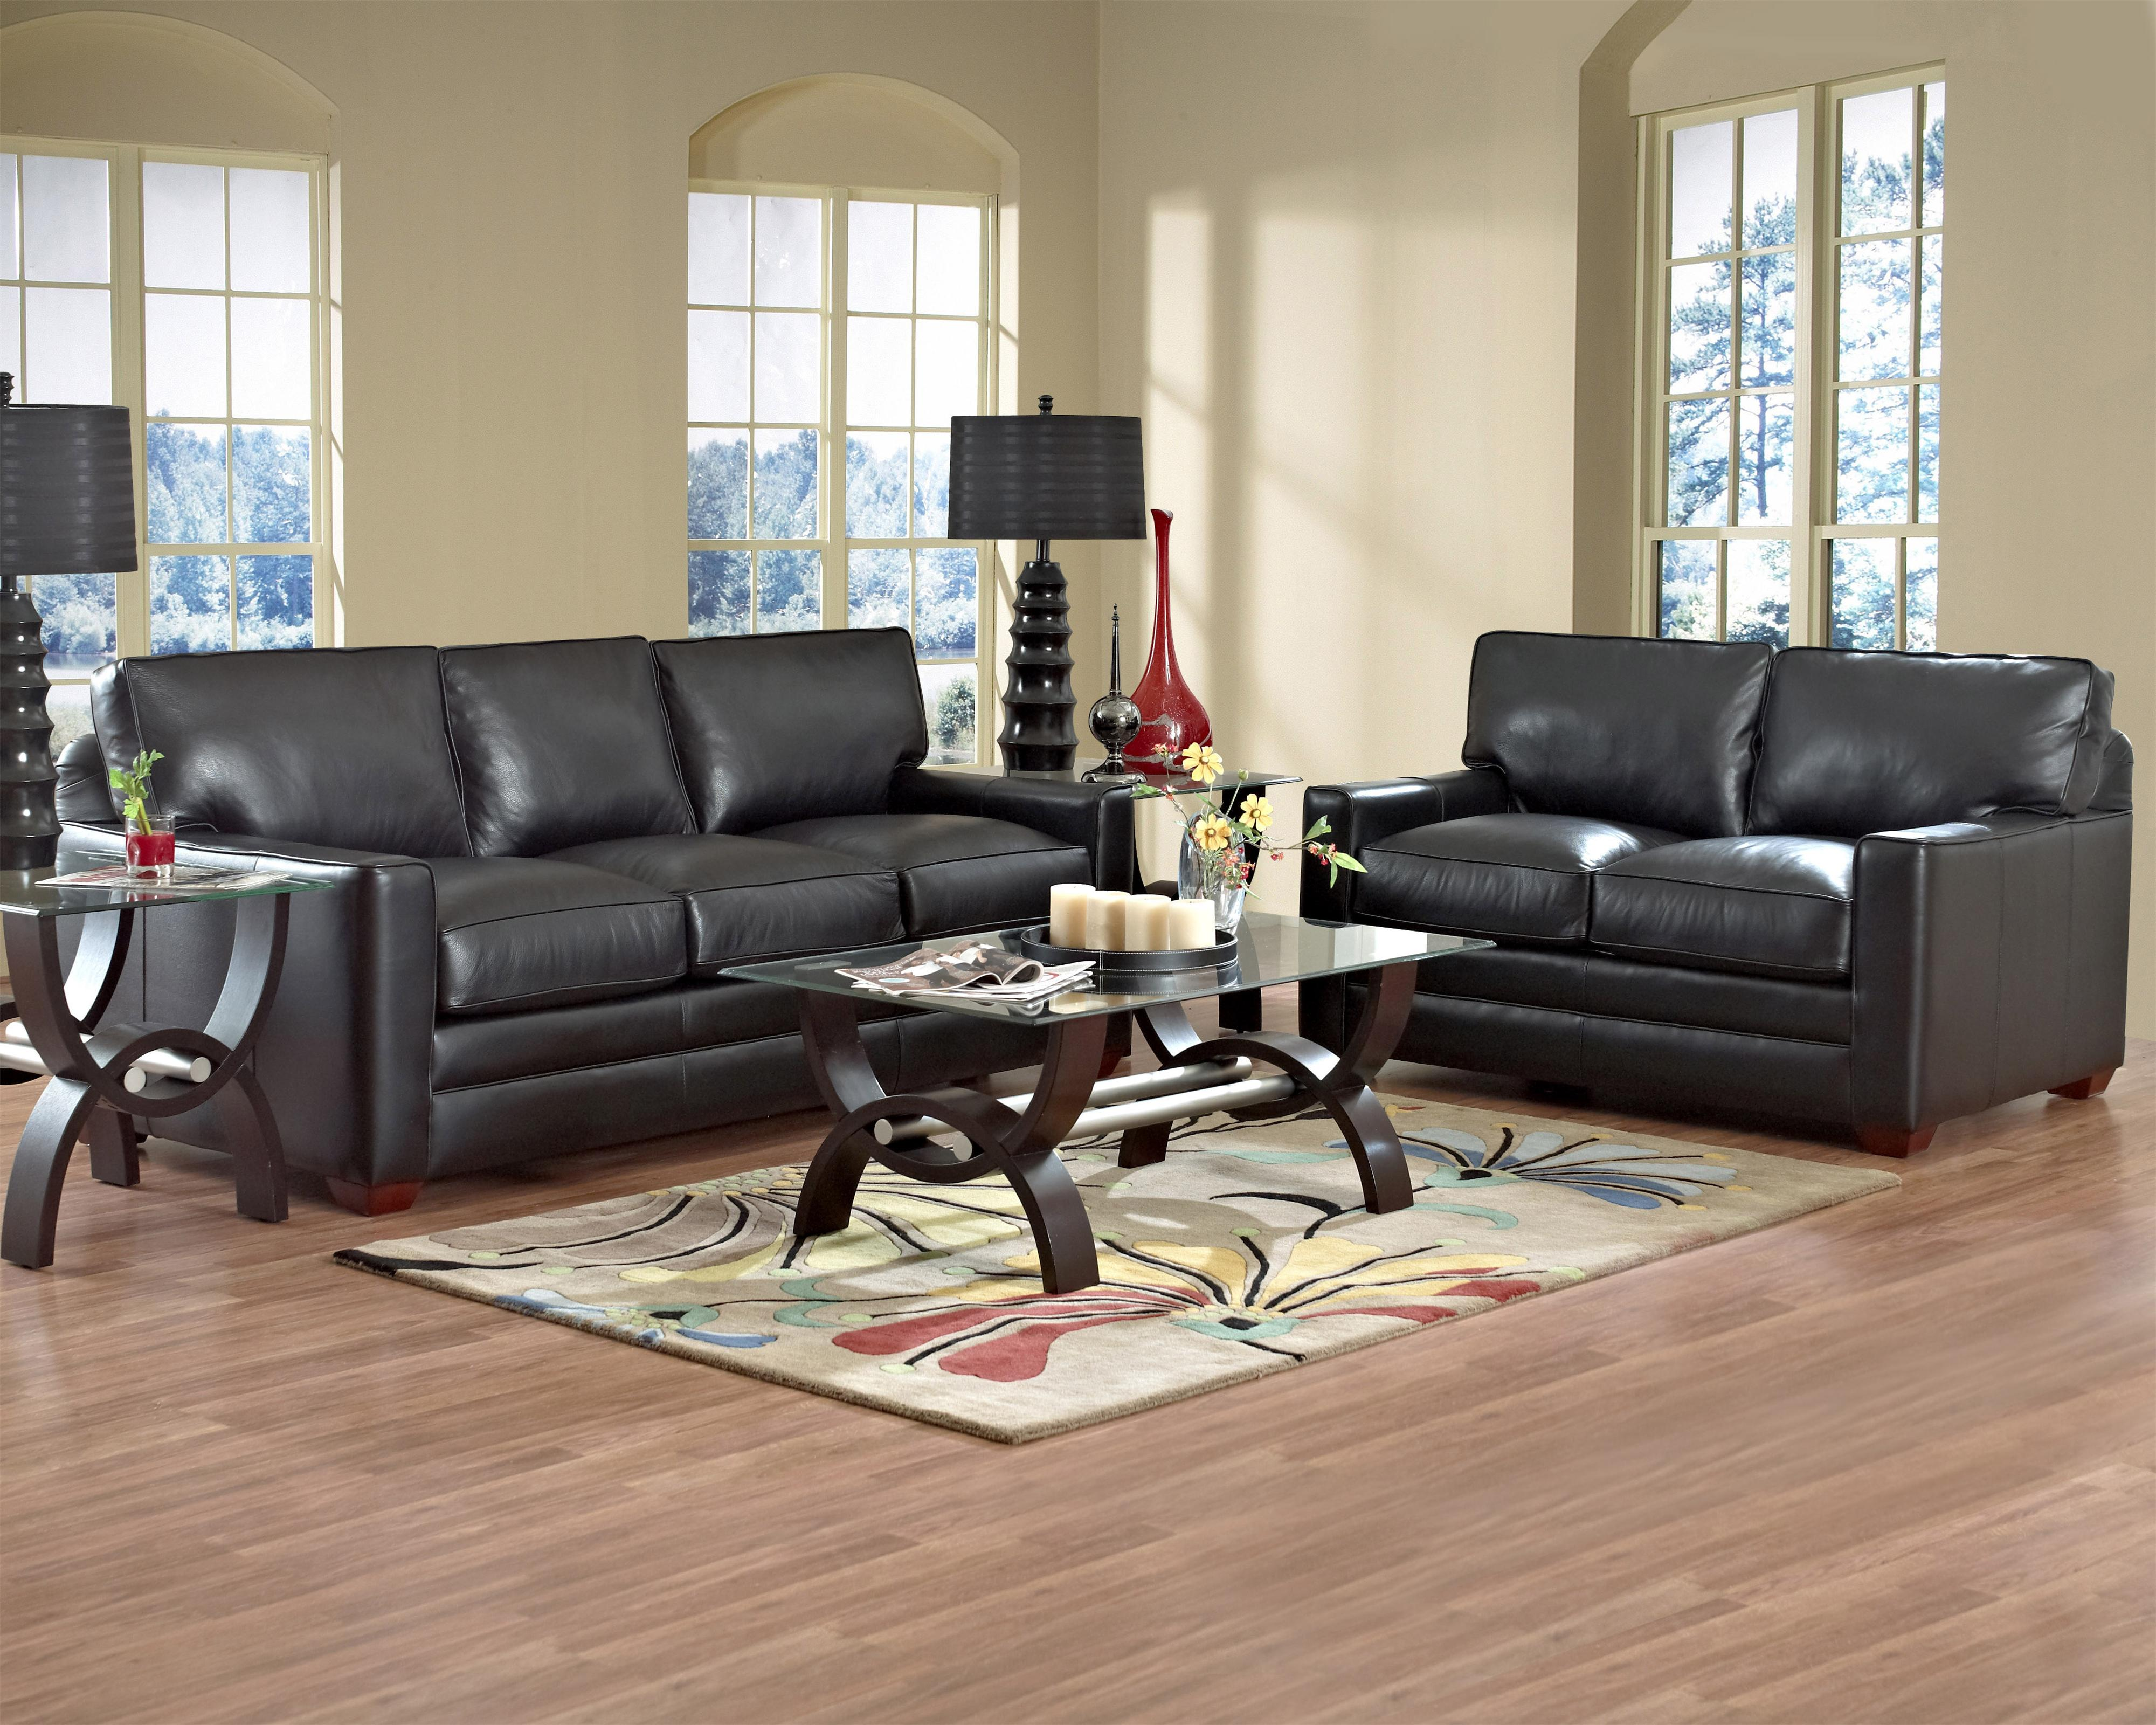 Pantego Stationary Living Room Group by Klaussner at Northeast Factory Direct